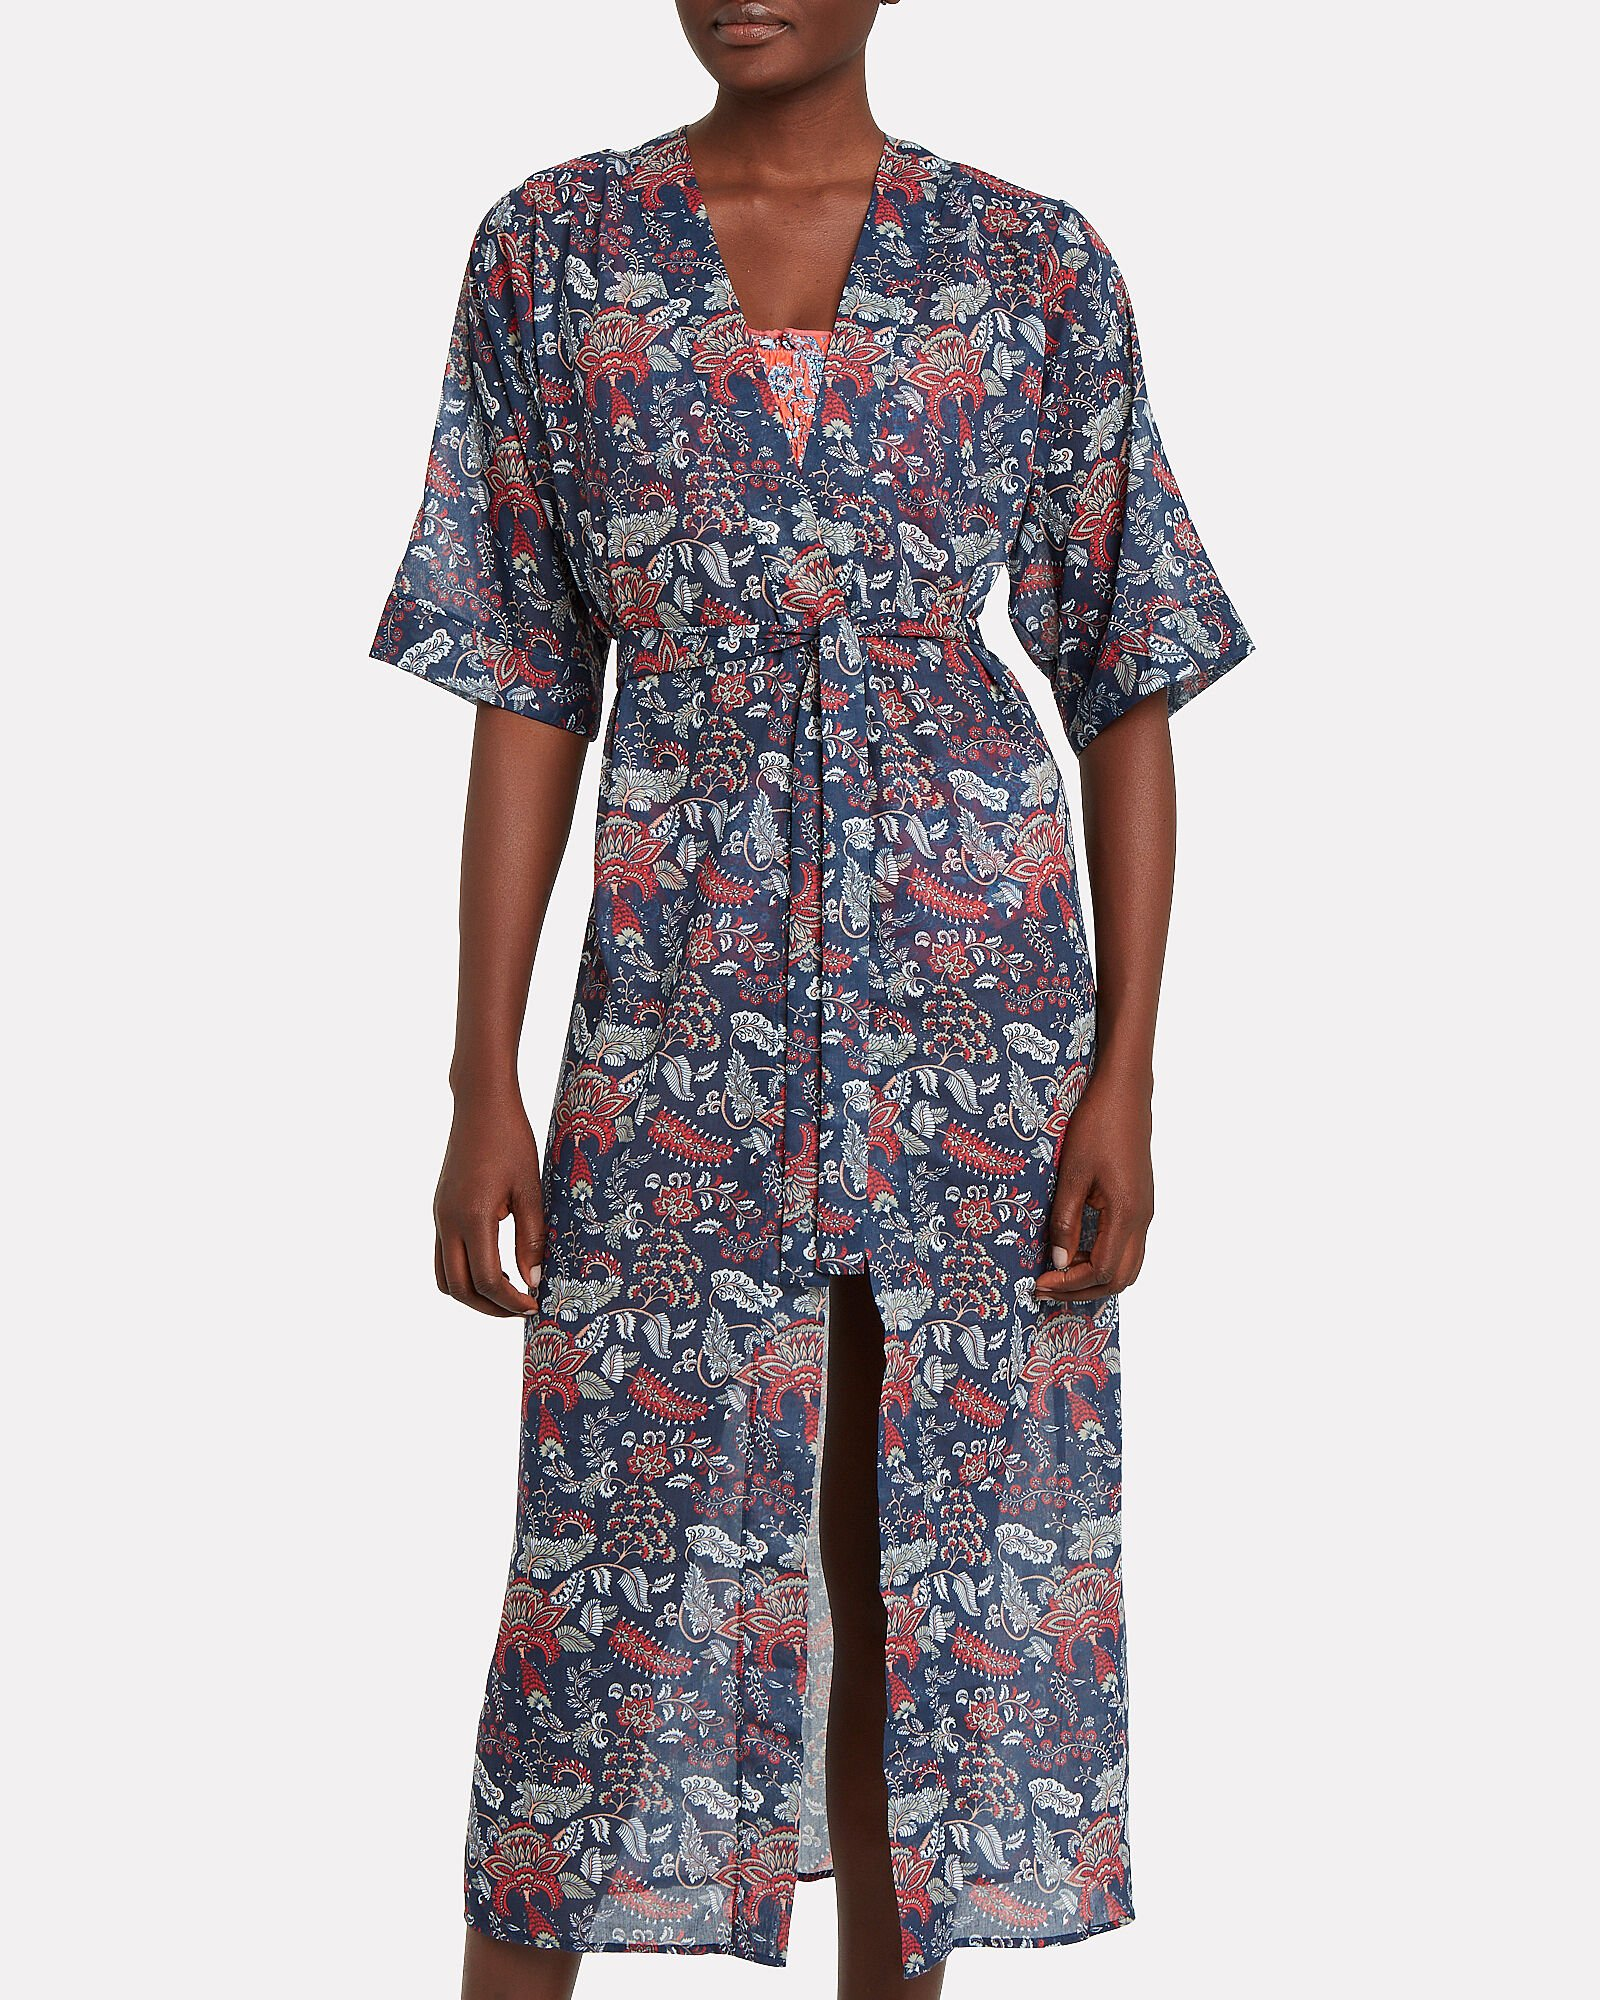 Floral Print Cotton Cover-Up, NAVY/RED FLORAL, hi-res